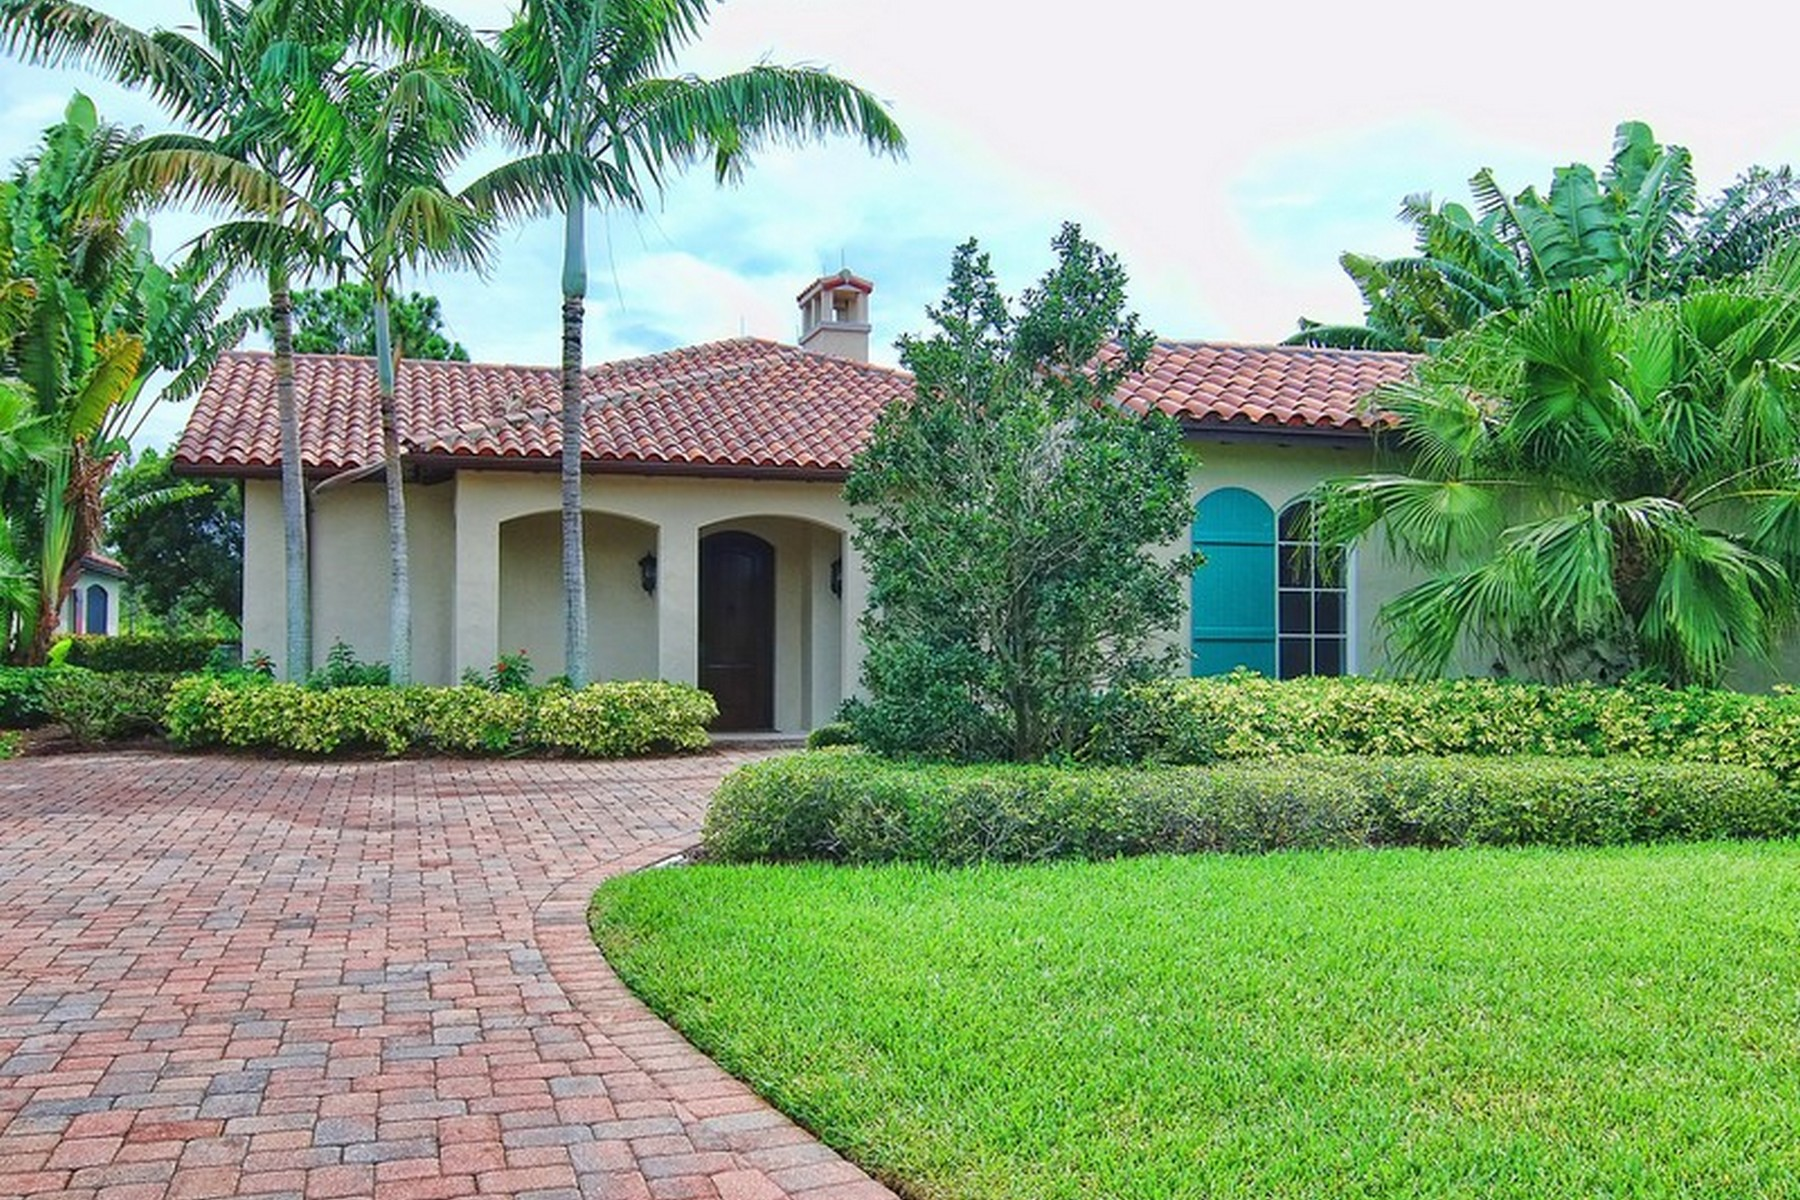 Multipropiedad por un Venta en 640 White Pelican Way (Interest 12) Jupiter, Florida 33477 Estados Unidos